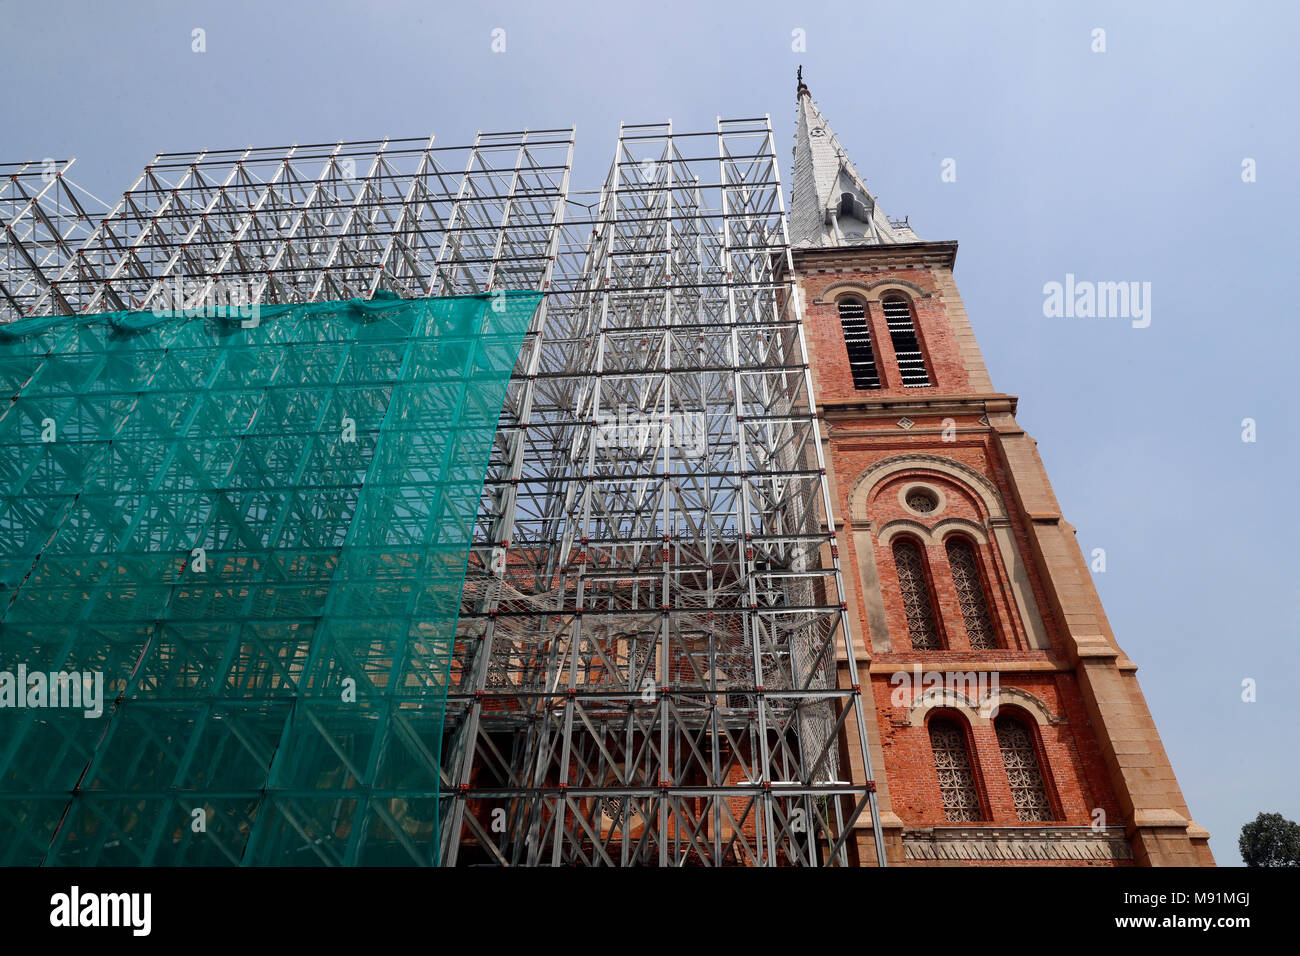 Ho Chi Minh City's iconic Notre-Dame Cathedral under a massive renovation.  Ho Chi Minh City. Vietnam. - Stock Image